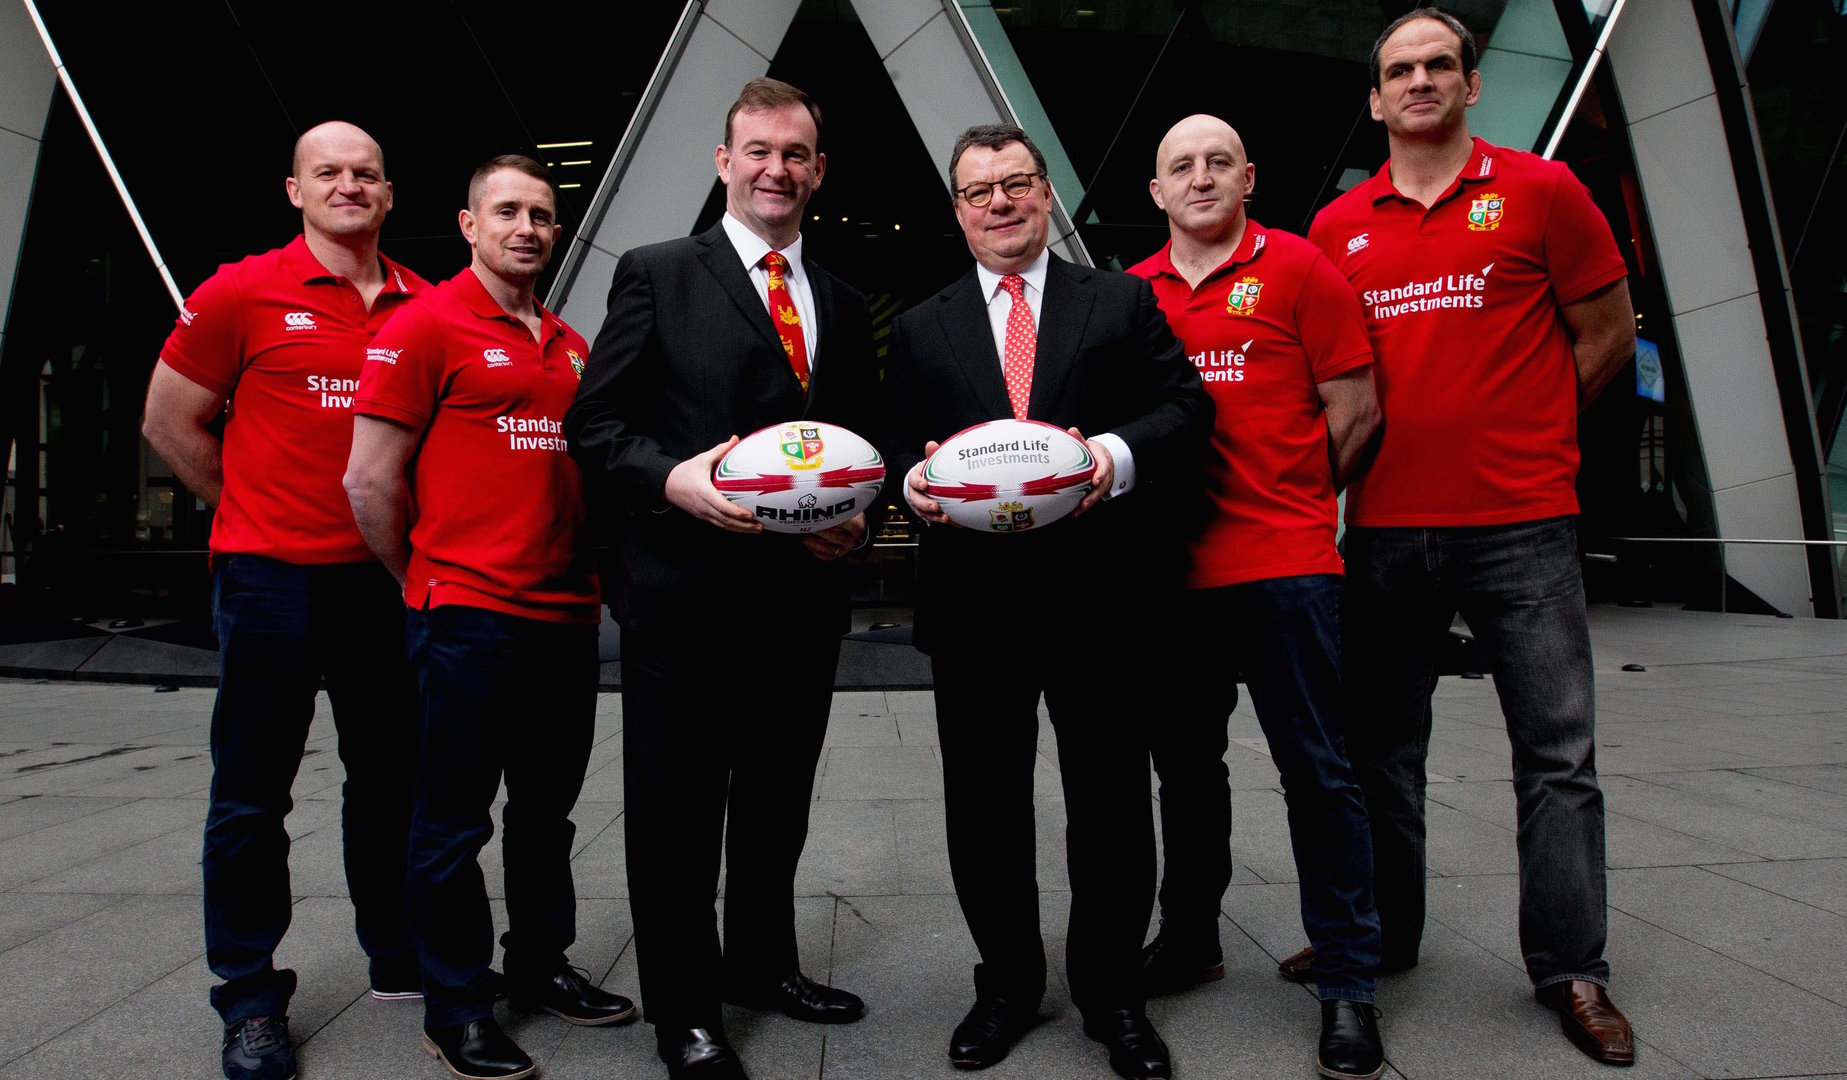 Standard life investments global ii - The British Irish Lions And Standard Life Investments Today Announced That The Global Asset Manager Will Become A Principal Partner For The 2017 Tour To